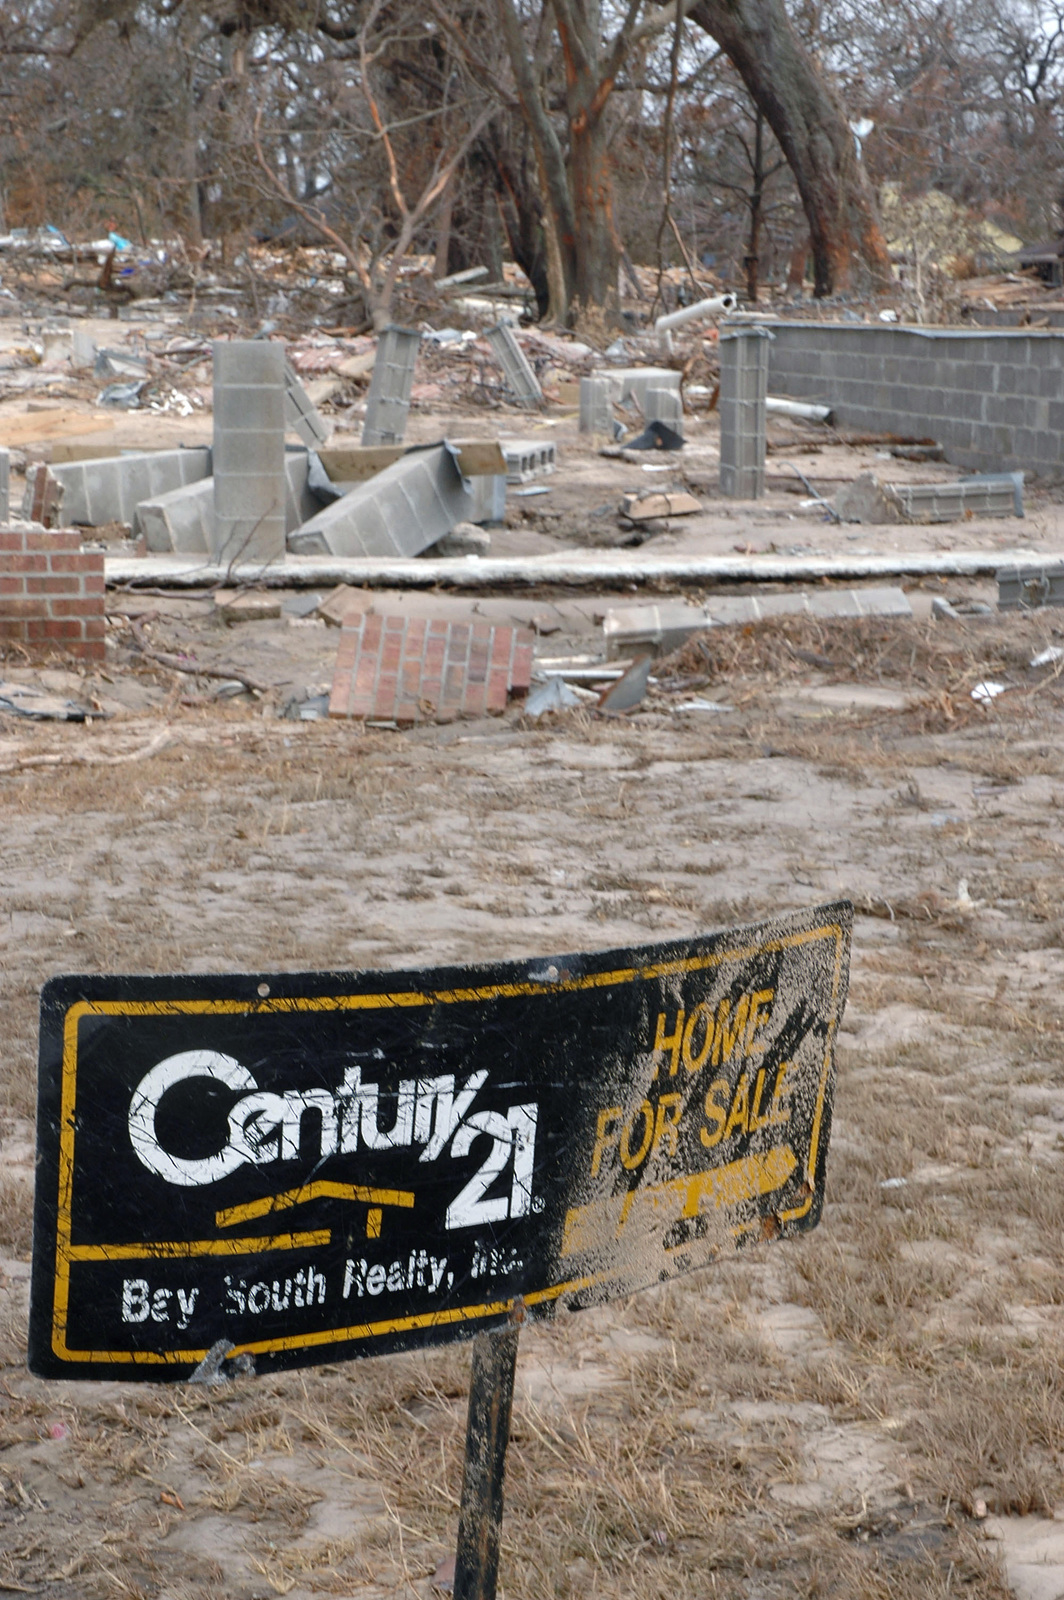 A home for sale sign stands in front of the scattered debris that